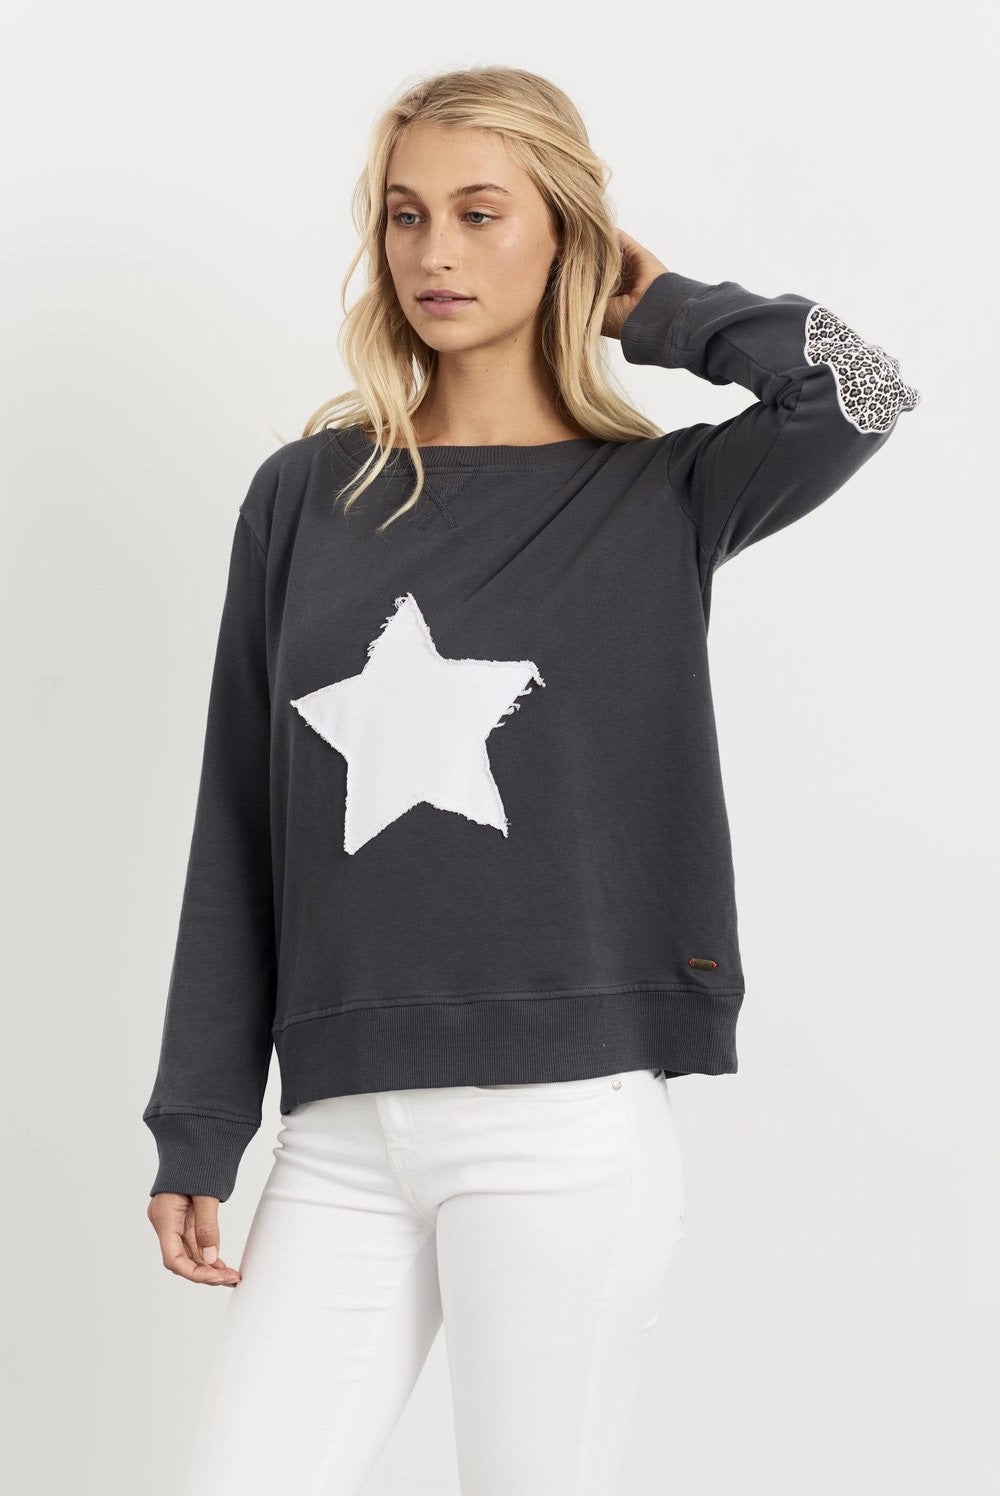 Leopard Star Windy-Charcoal